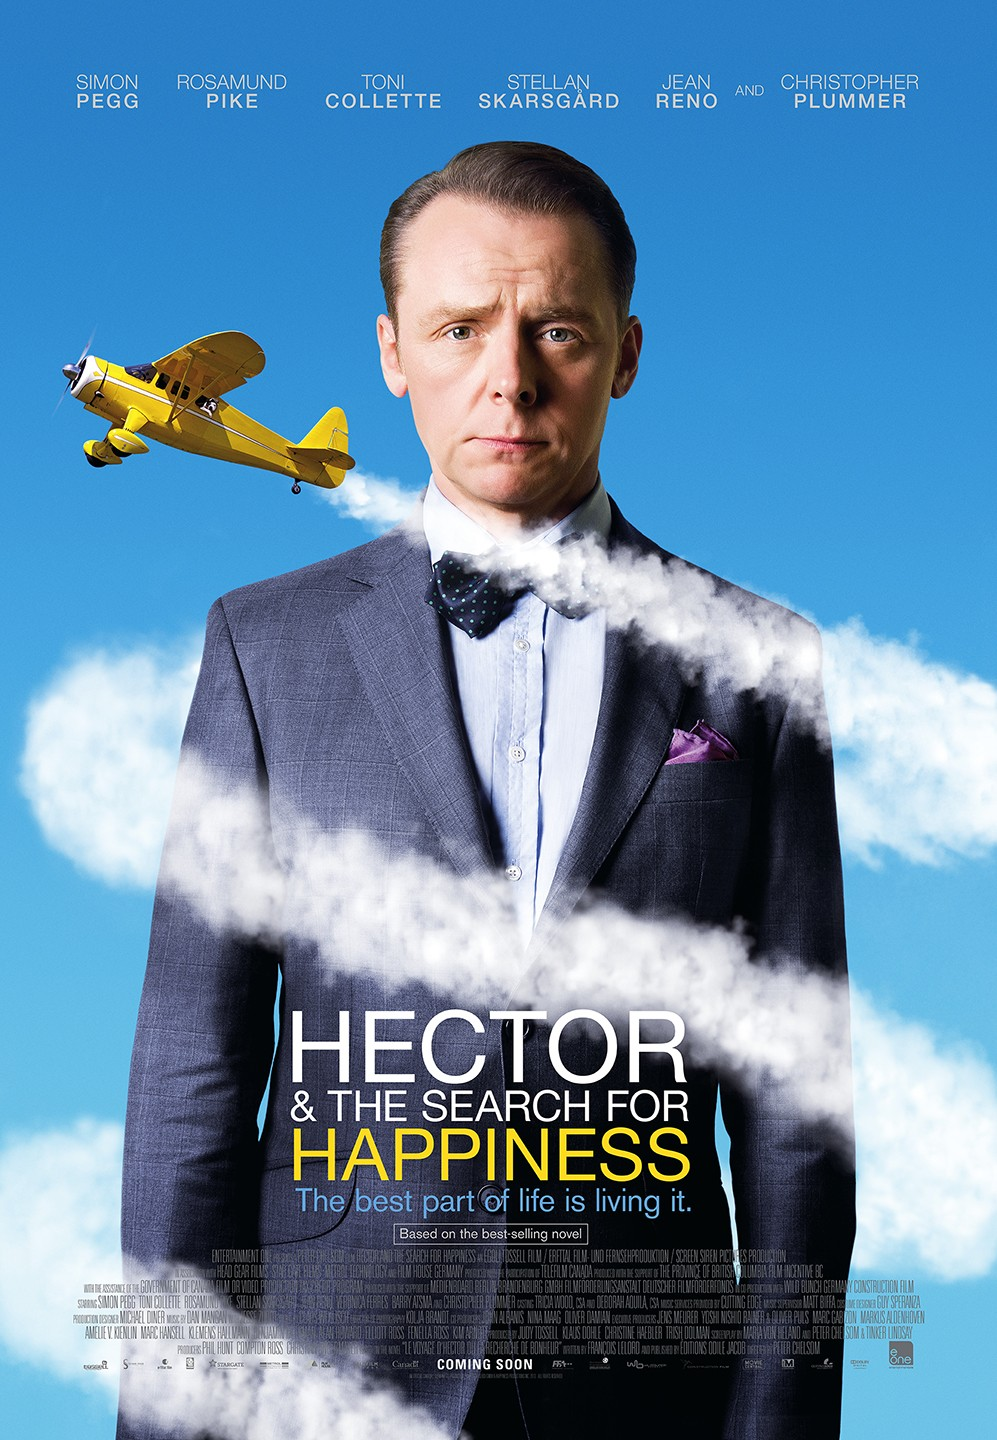 Hector and the Search for Happiness-Official Poster Banner PROMO-21JULHO2014-02